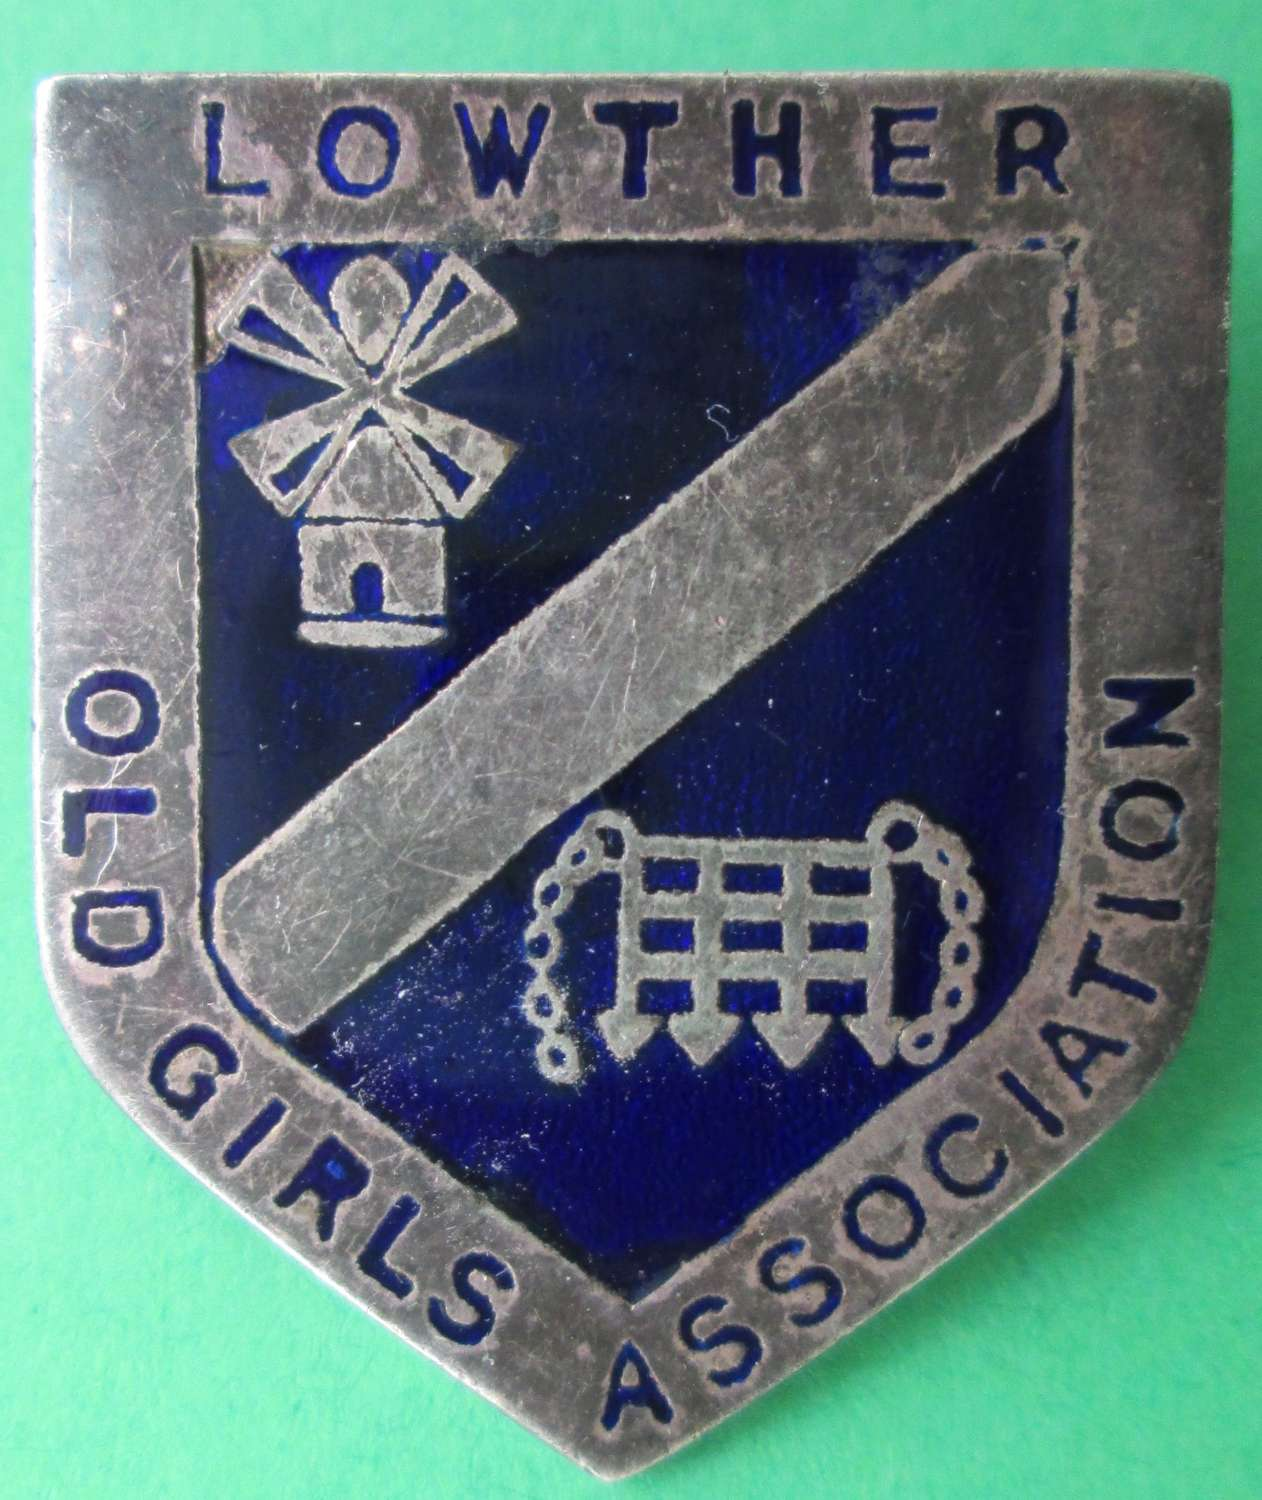 A LOWTHER OLD GIRLS ASSOCIATION PIN BADGE